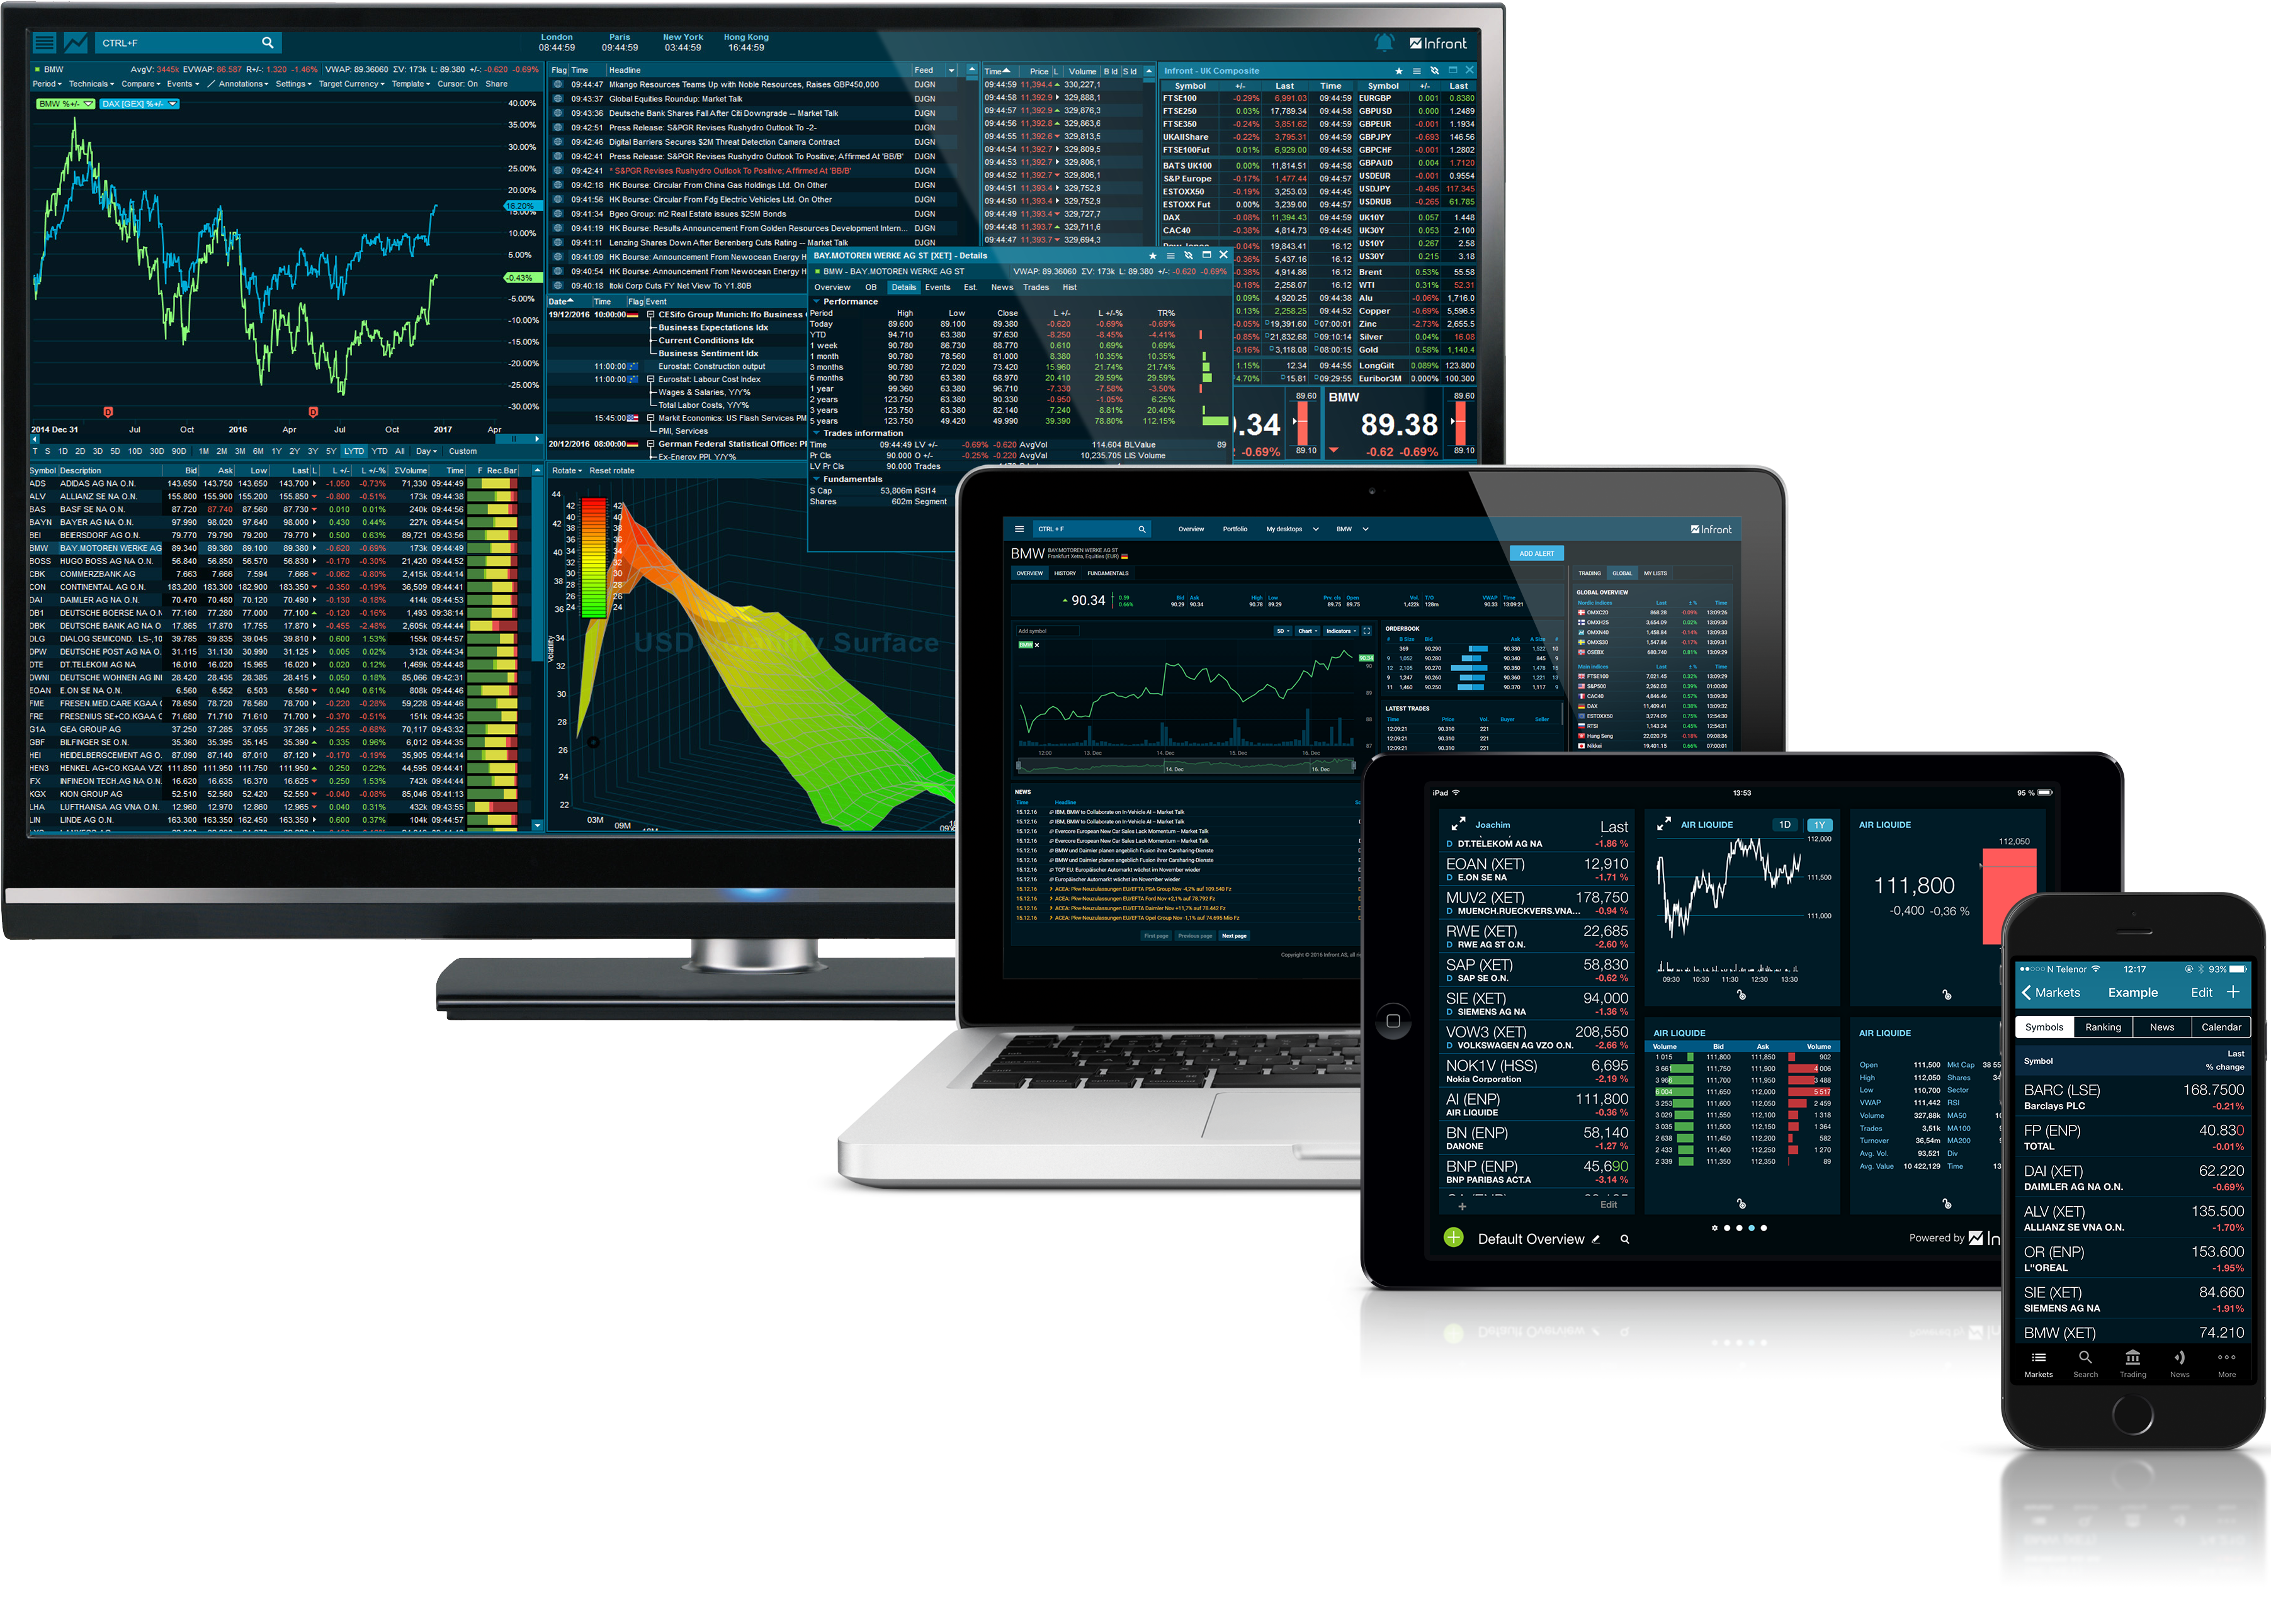 Market data and trading platform